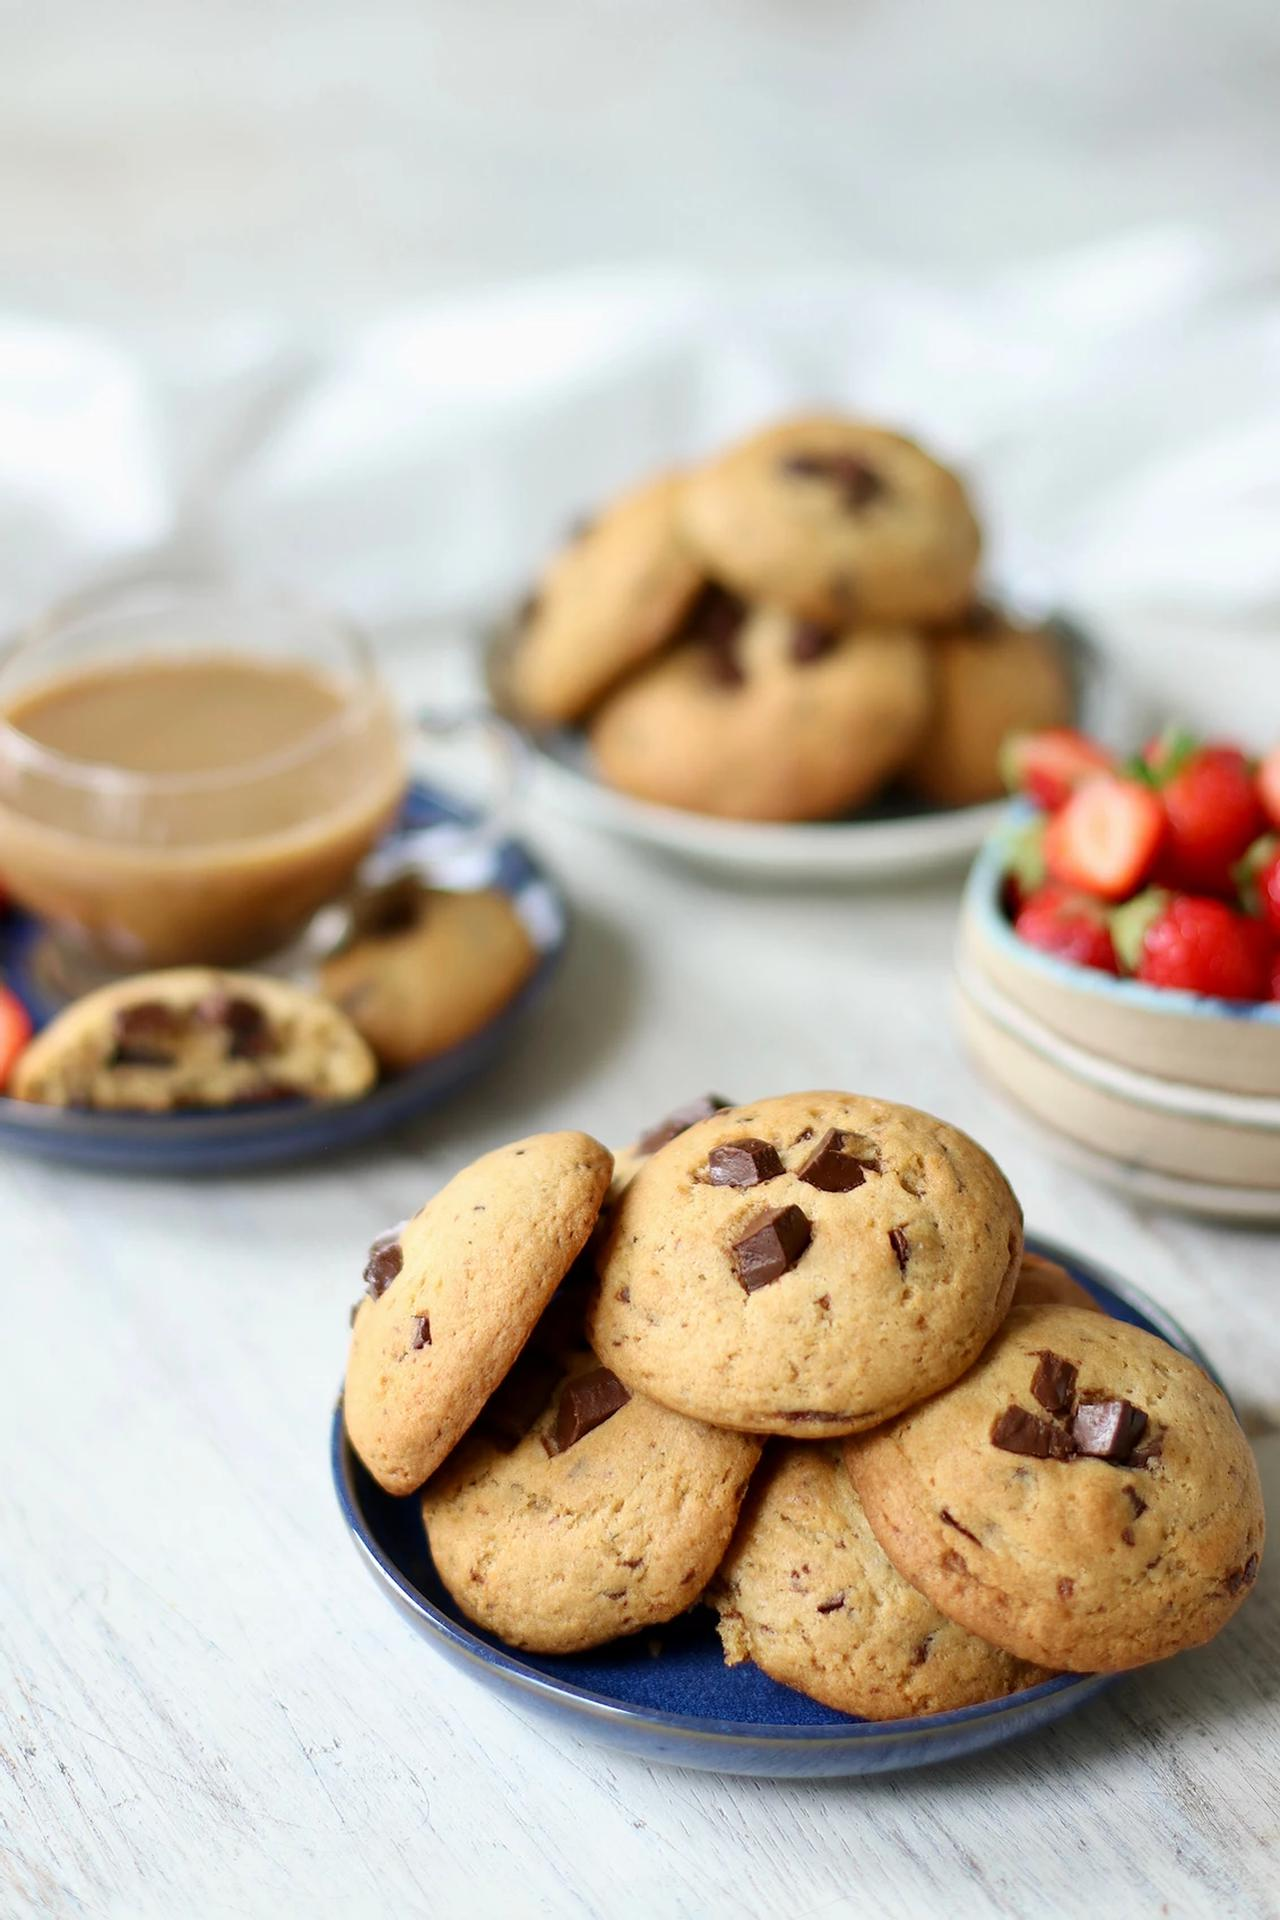 Main image of One-Bowl Soft Vegan Chocolate Chip Cookies